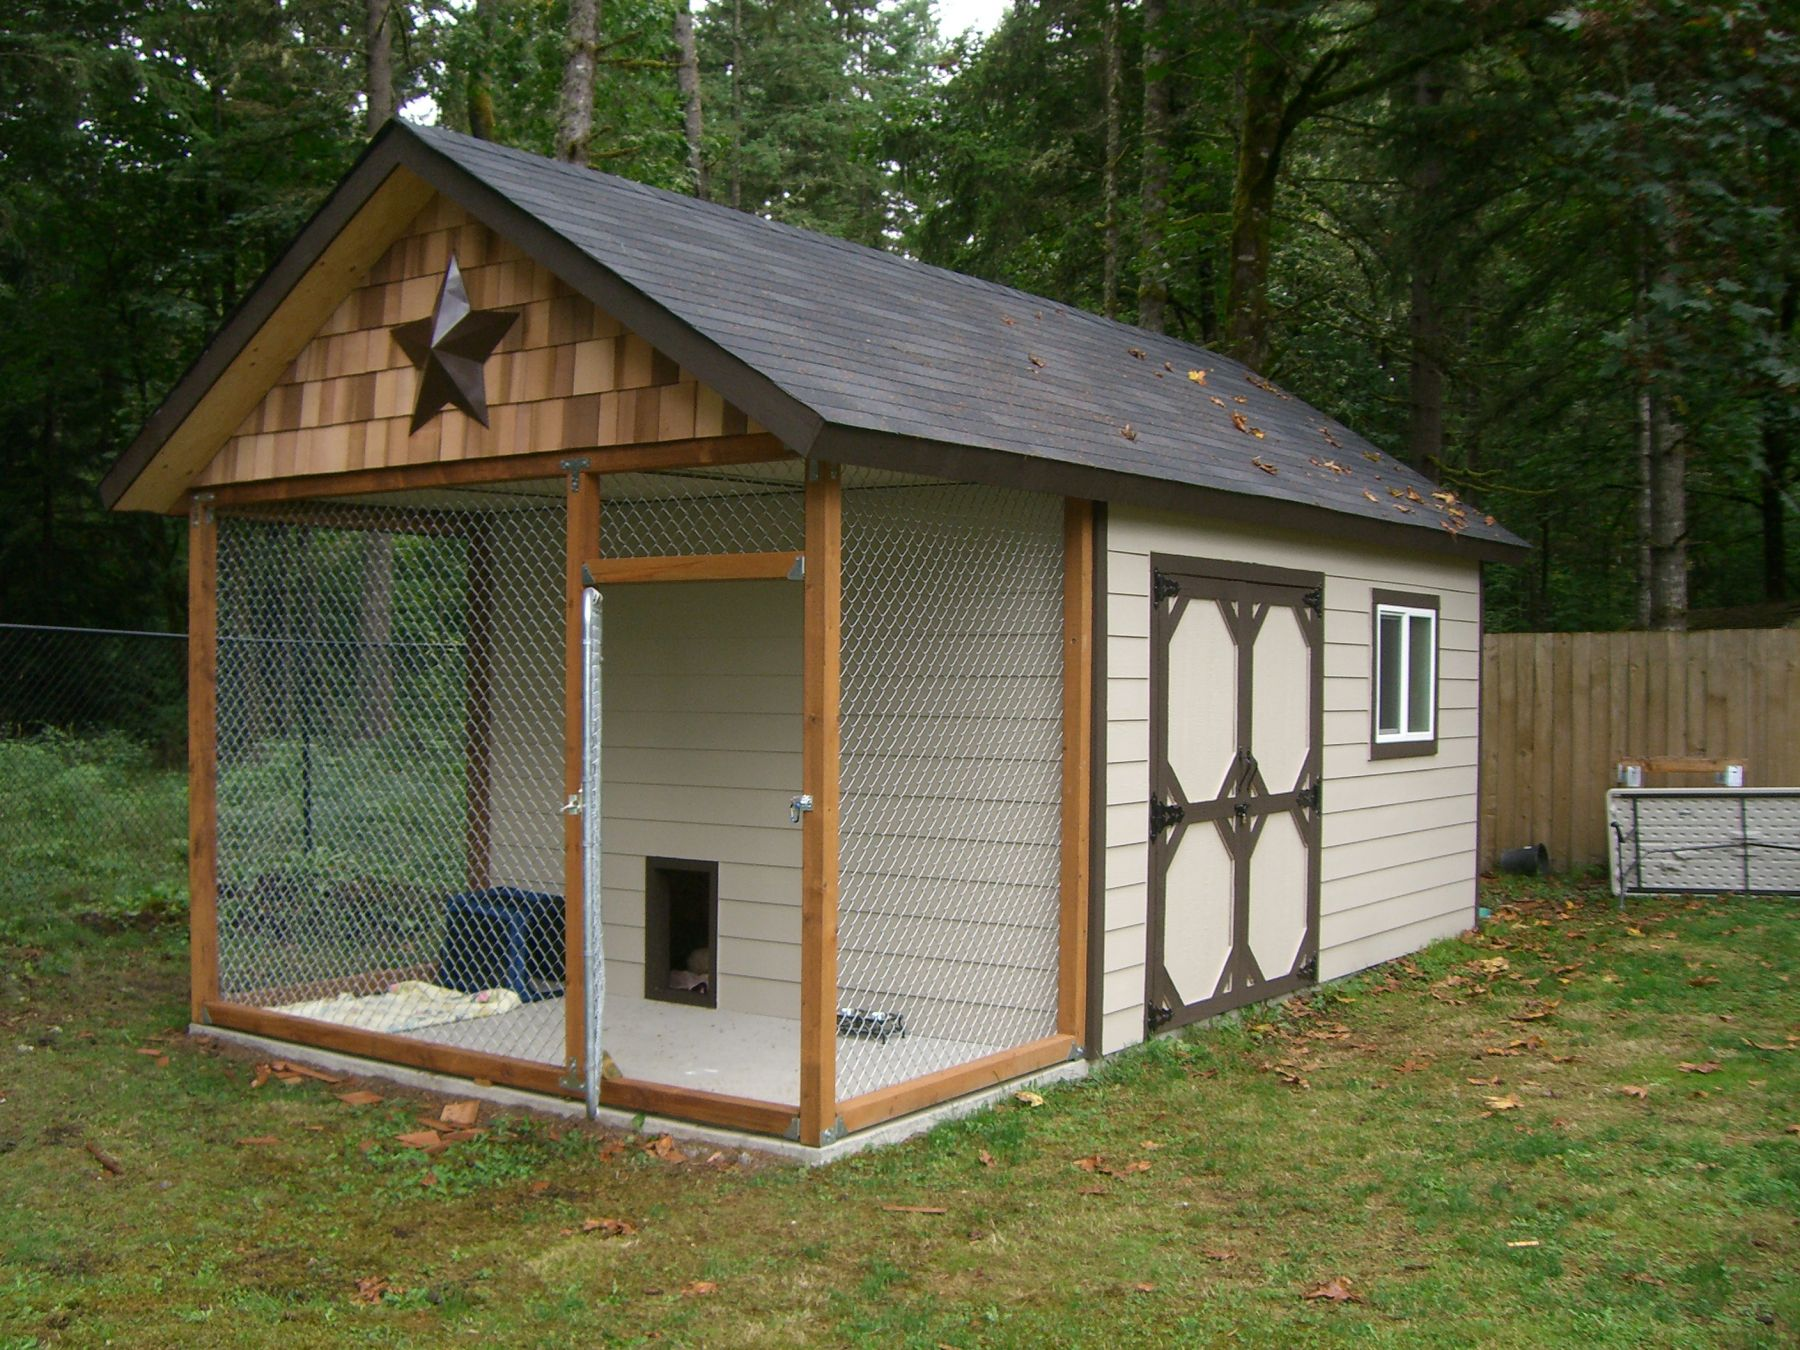 doghouse shed design ideas - Shed Design Ideas